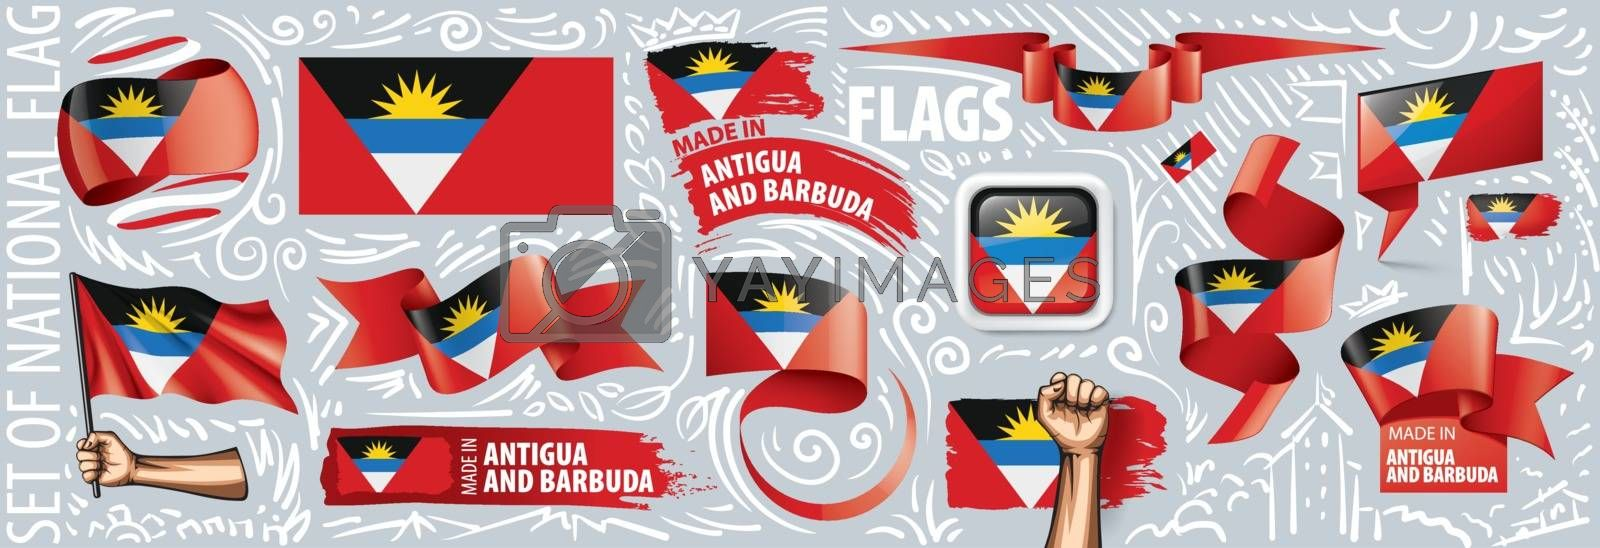 Vector set of the national flag of Antigua and Barbuda in various creative designs.